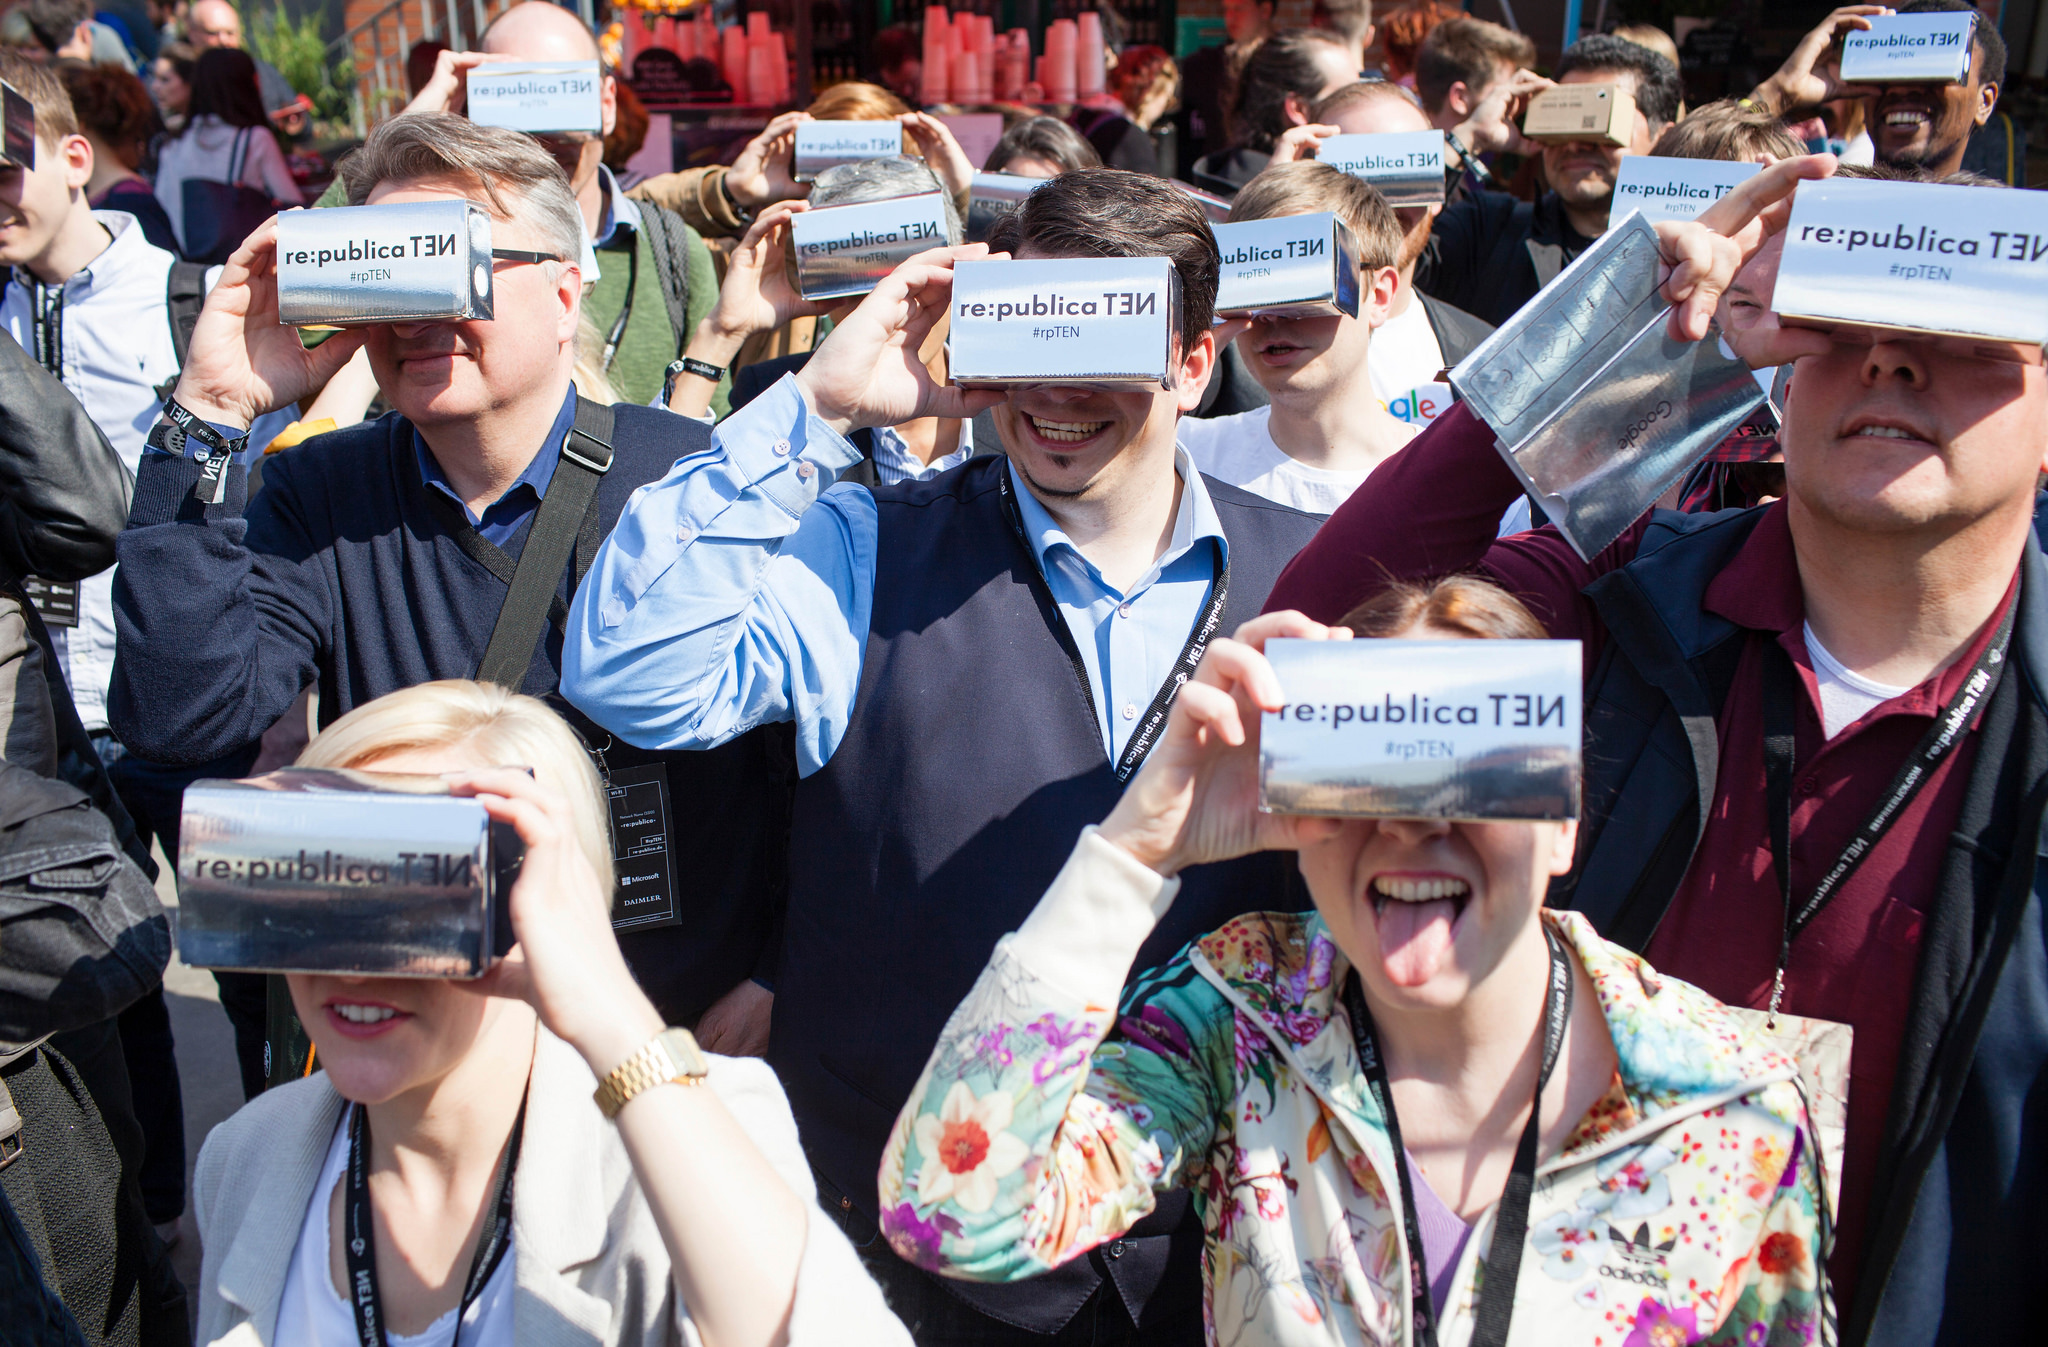 Besucher beim Google Cardboard Flashmob am 03.05.2016 auf der re:publica in Berlin. Foto: re:publica/Jan Zappner CC BY 2.0